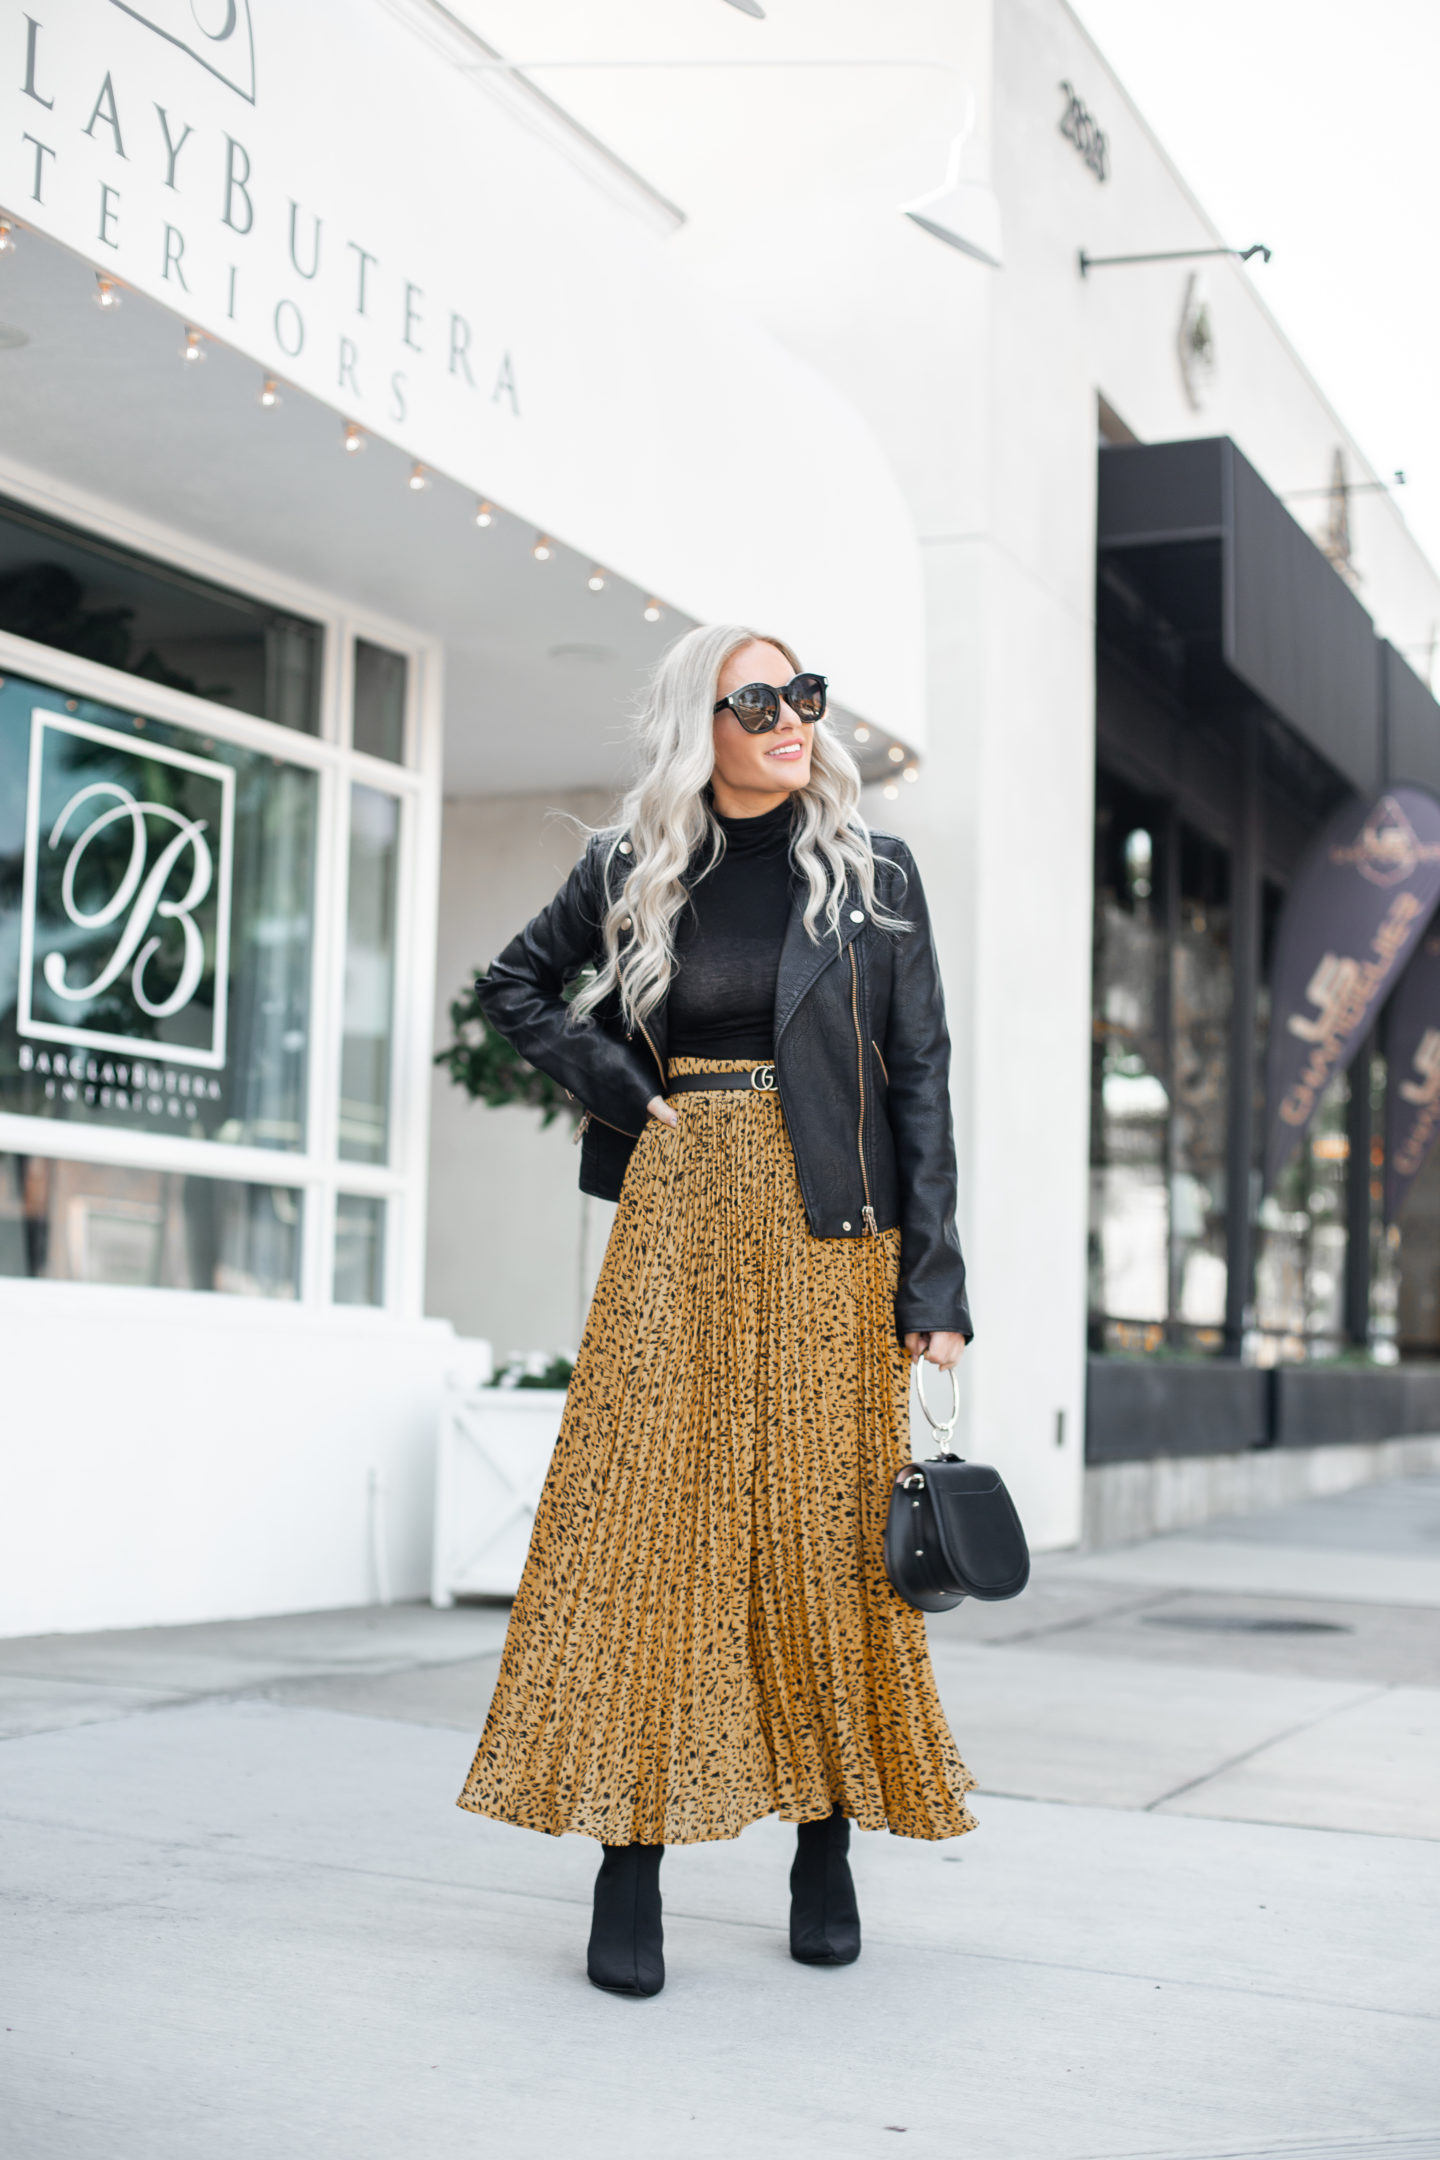 How to Style a Leopard Maxi Dress in the Fall, tips featured by top US fashion blog, Dress Me Blonde: image of a woman wearing an AFRM leopard maxi dress, BLANKNYC Moto jacket, Marc Fisher booties, Double GG Gucci belt, Yoome circular ring handbag, and a Leith black bodysuit.